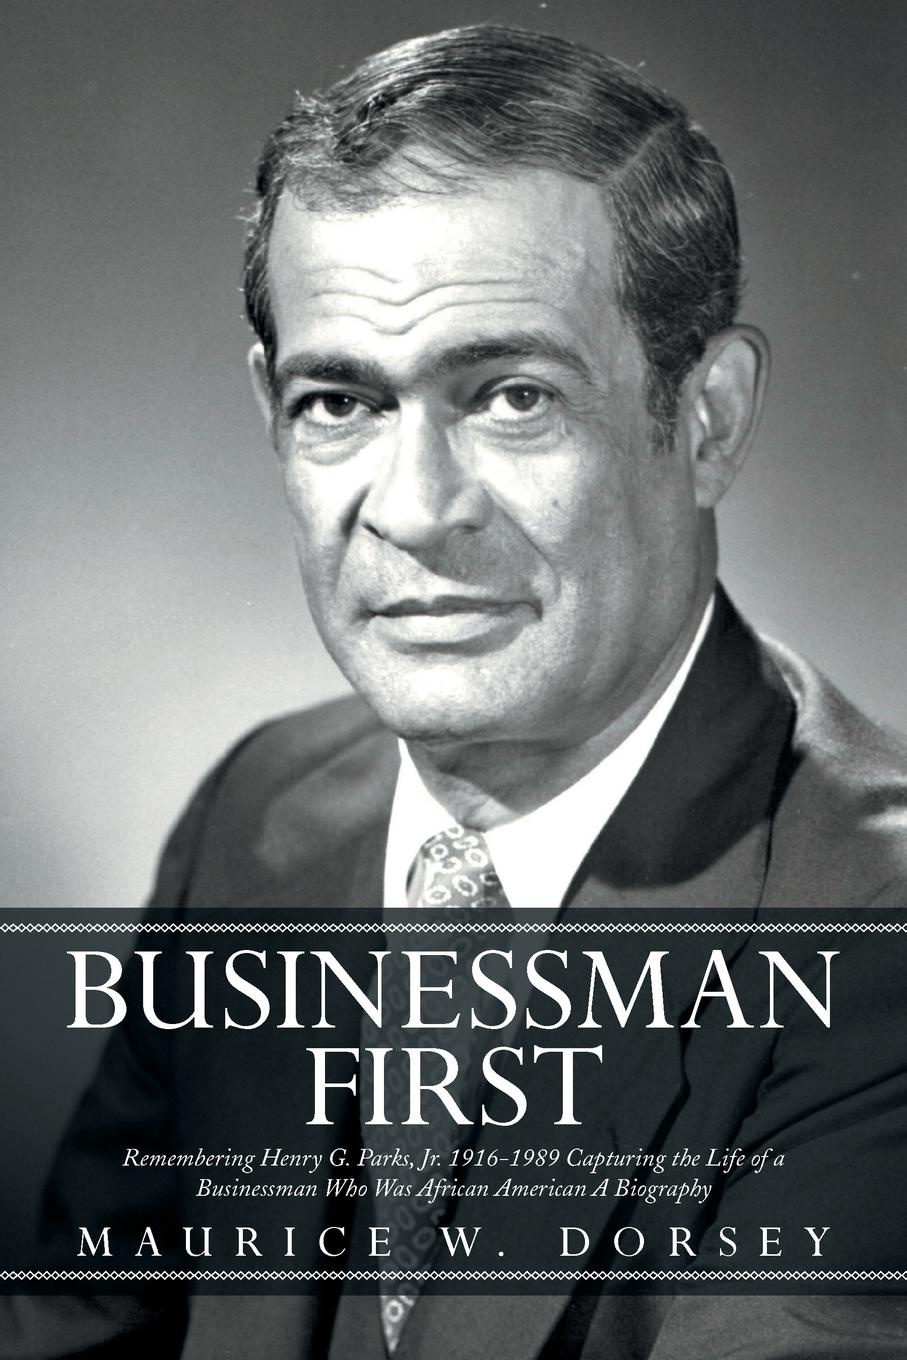 Maurice W. Dorsey Businessman First. Remembering Henry G. Parks, Jr. 1916-1989 Capturing the Life of a Businessman Who Was African American a Biography who was henry viii